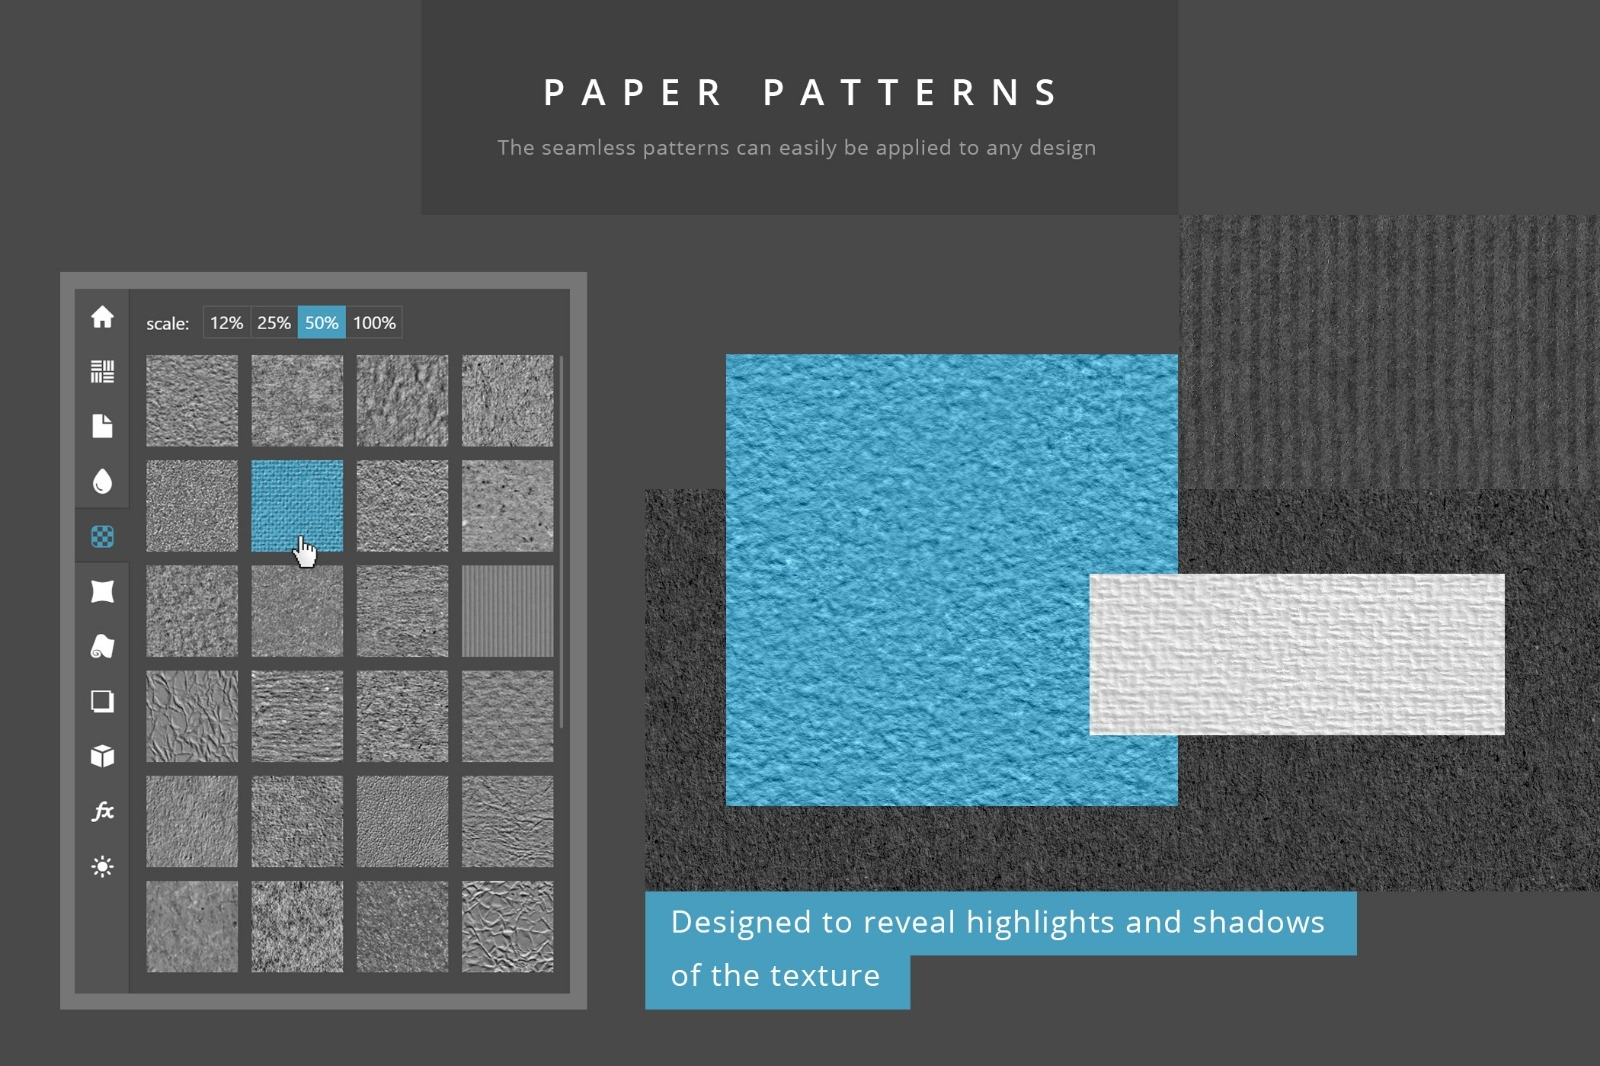 Paper Panel - Seamless Paper Patterns